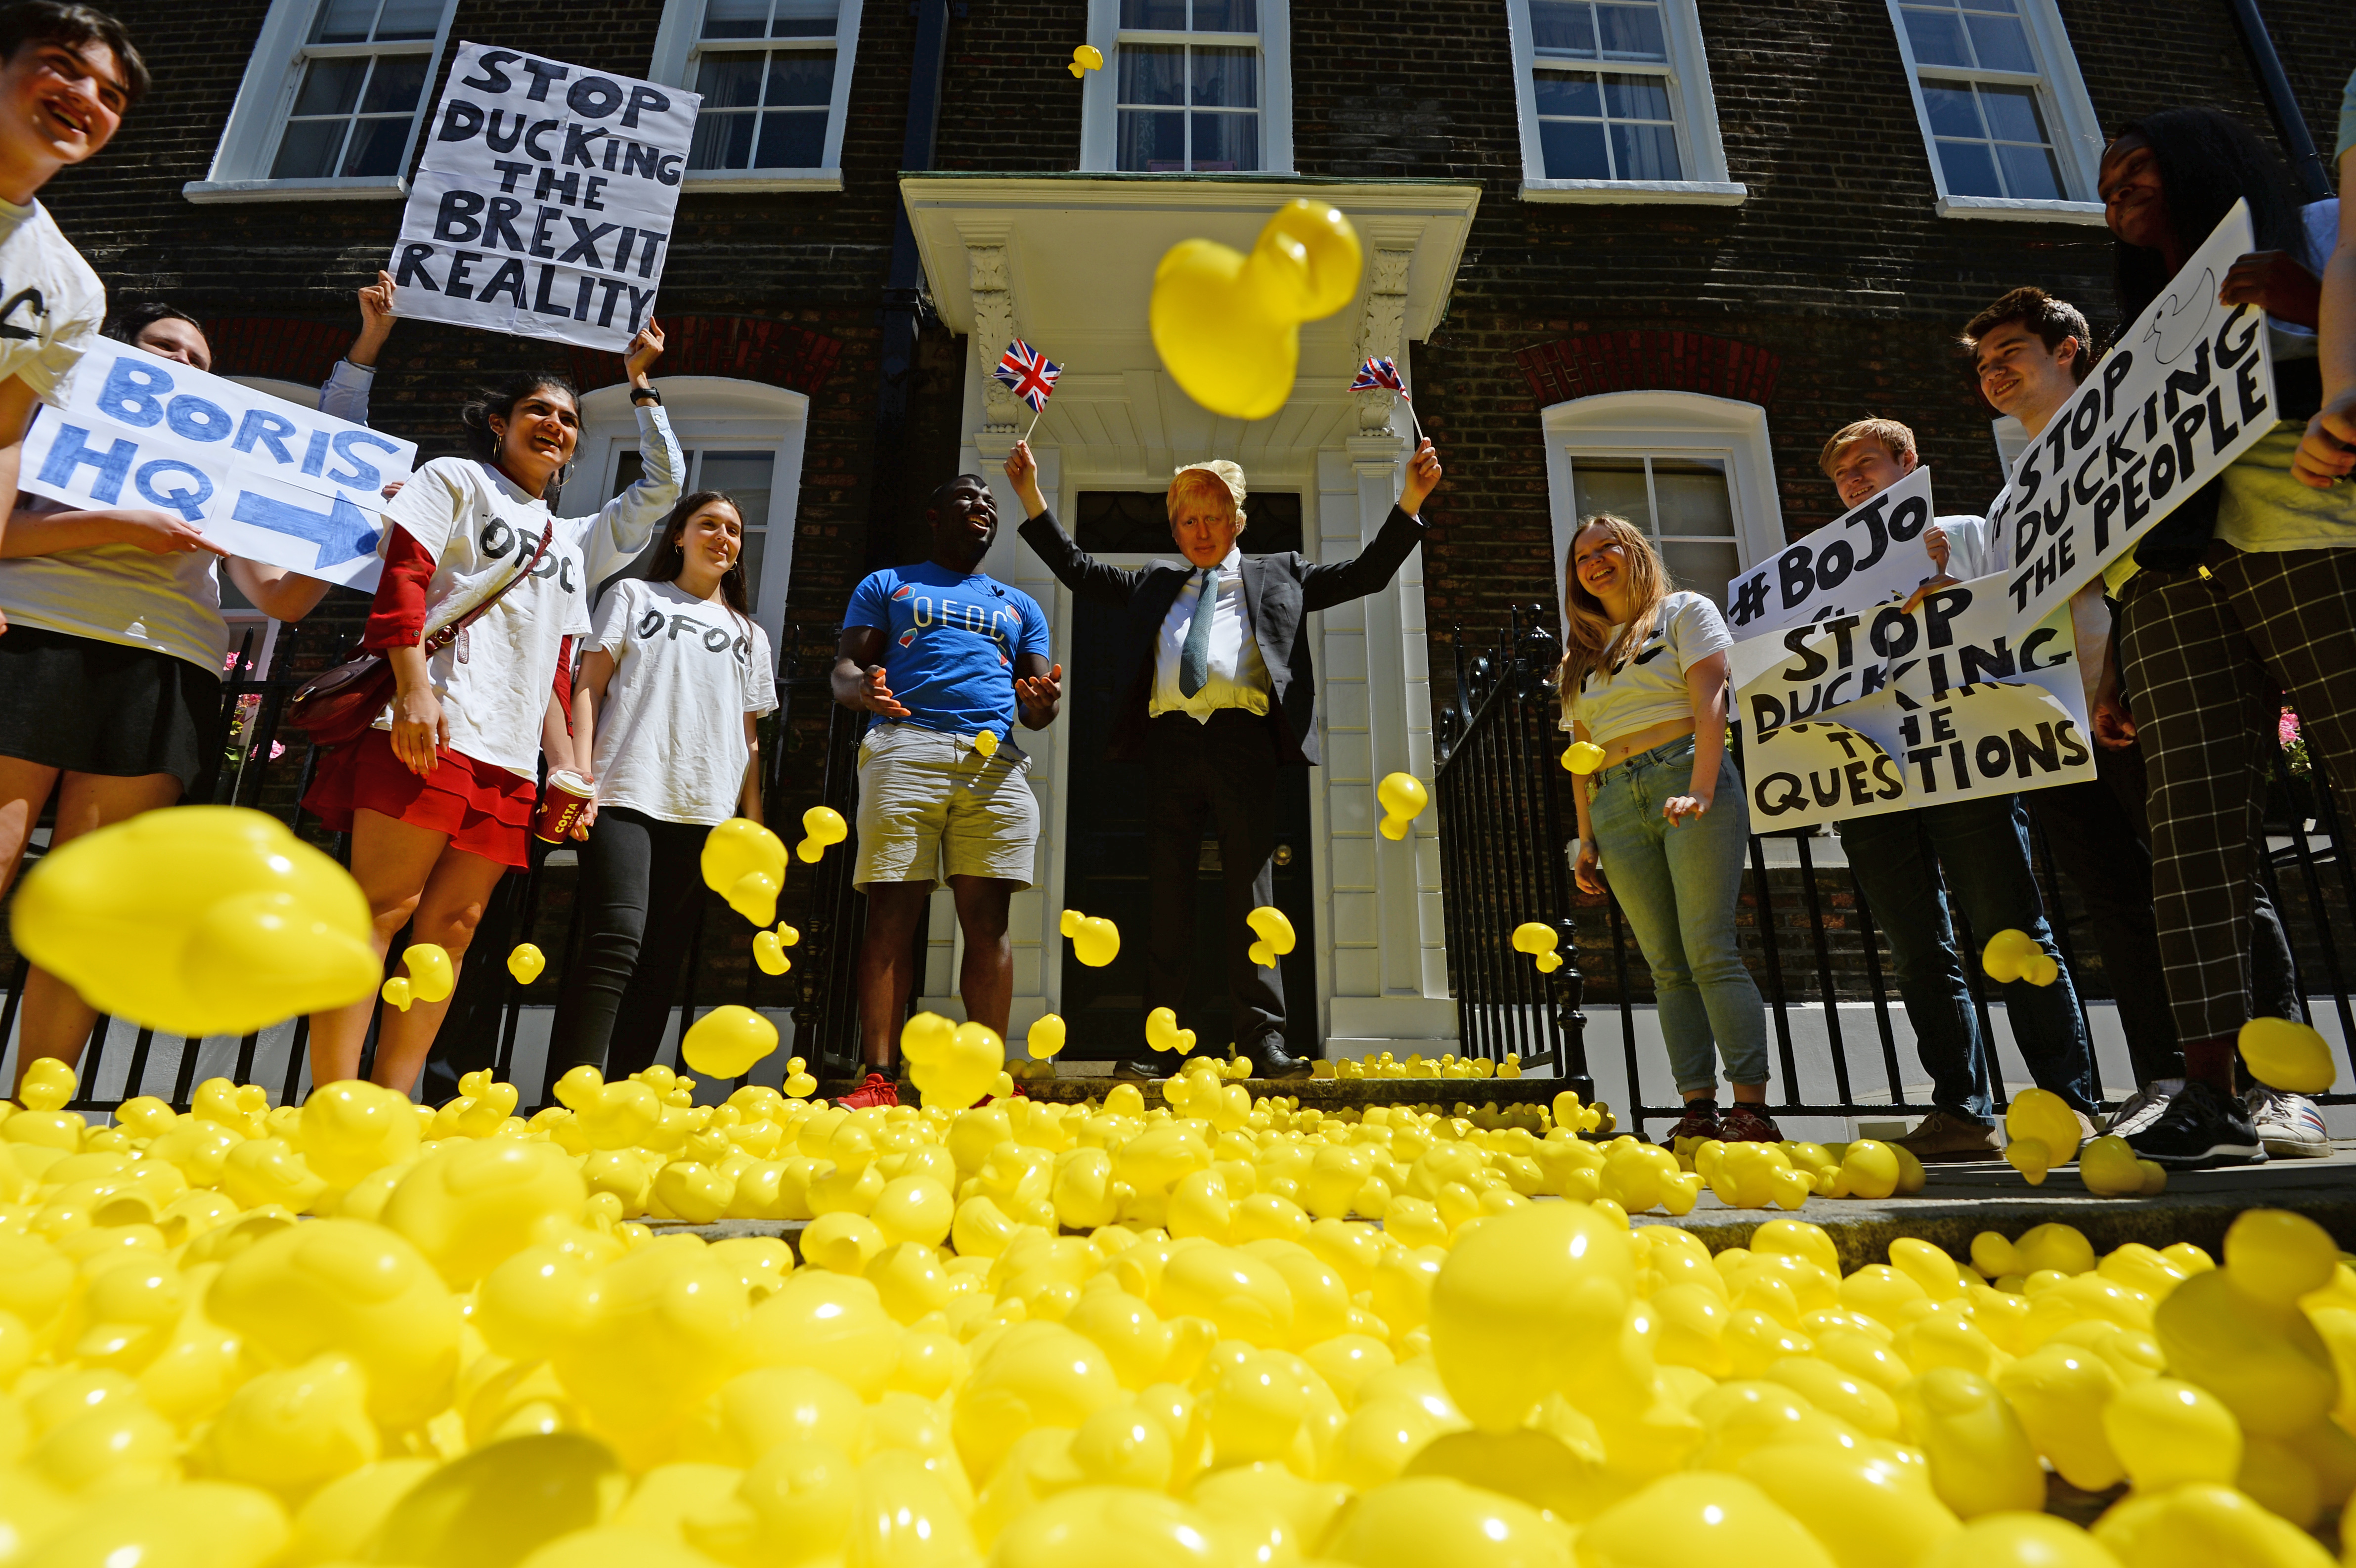 Campaigners from Our Future, Our Choice (OFOC) flood Lord North Street in Westminster, London, where Boris Johnson's campaign headquarters is , with 2000 rubber ducks.